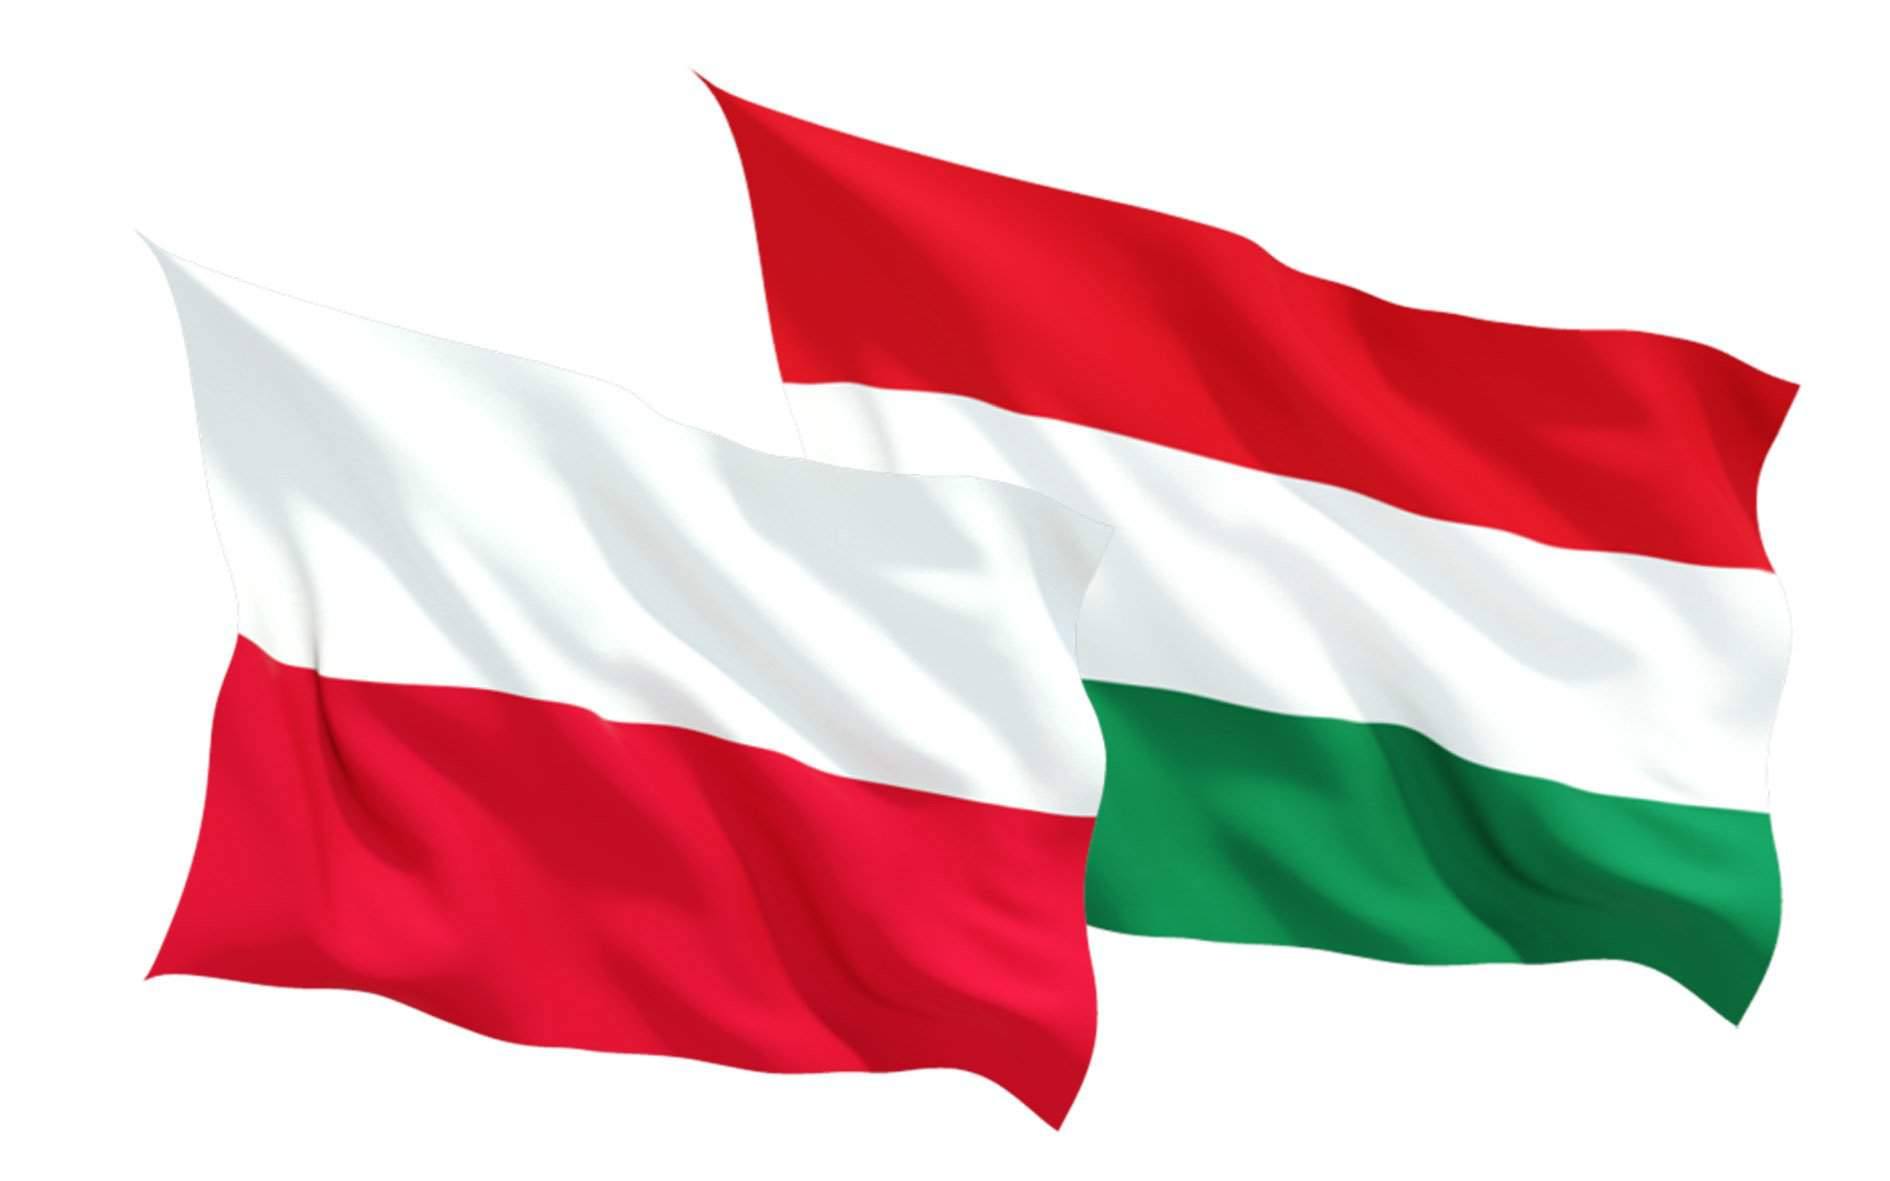 Poland and Hungary veto EU budget